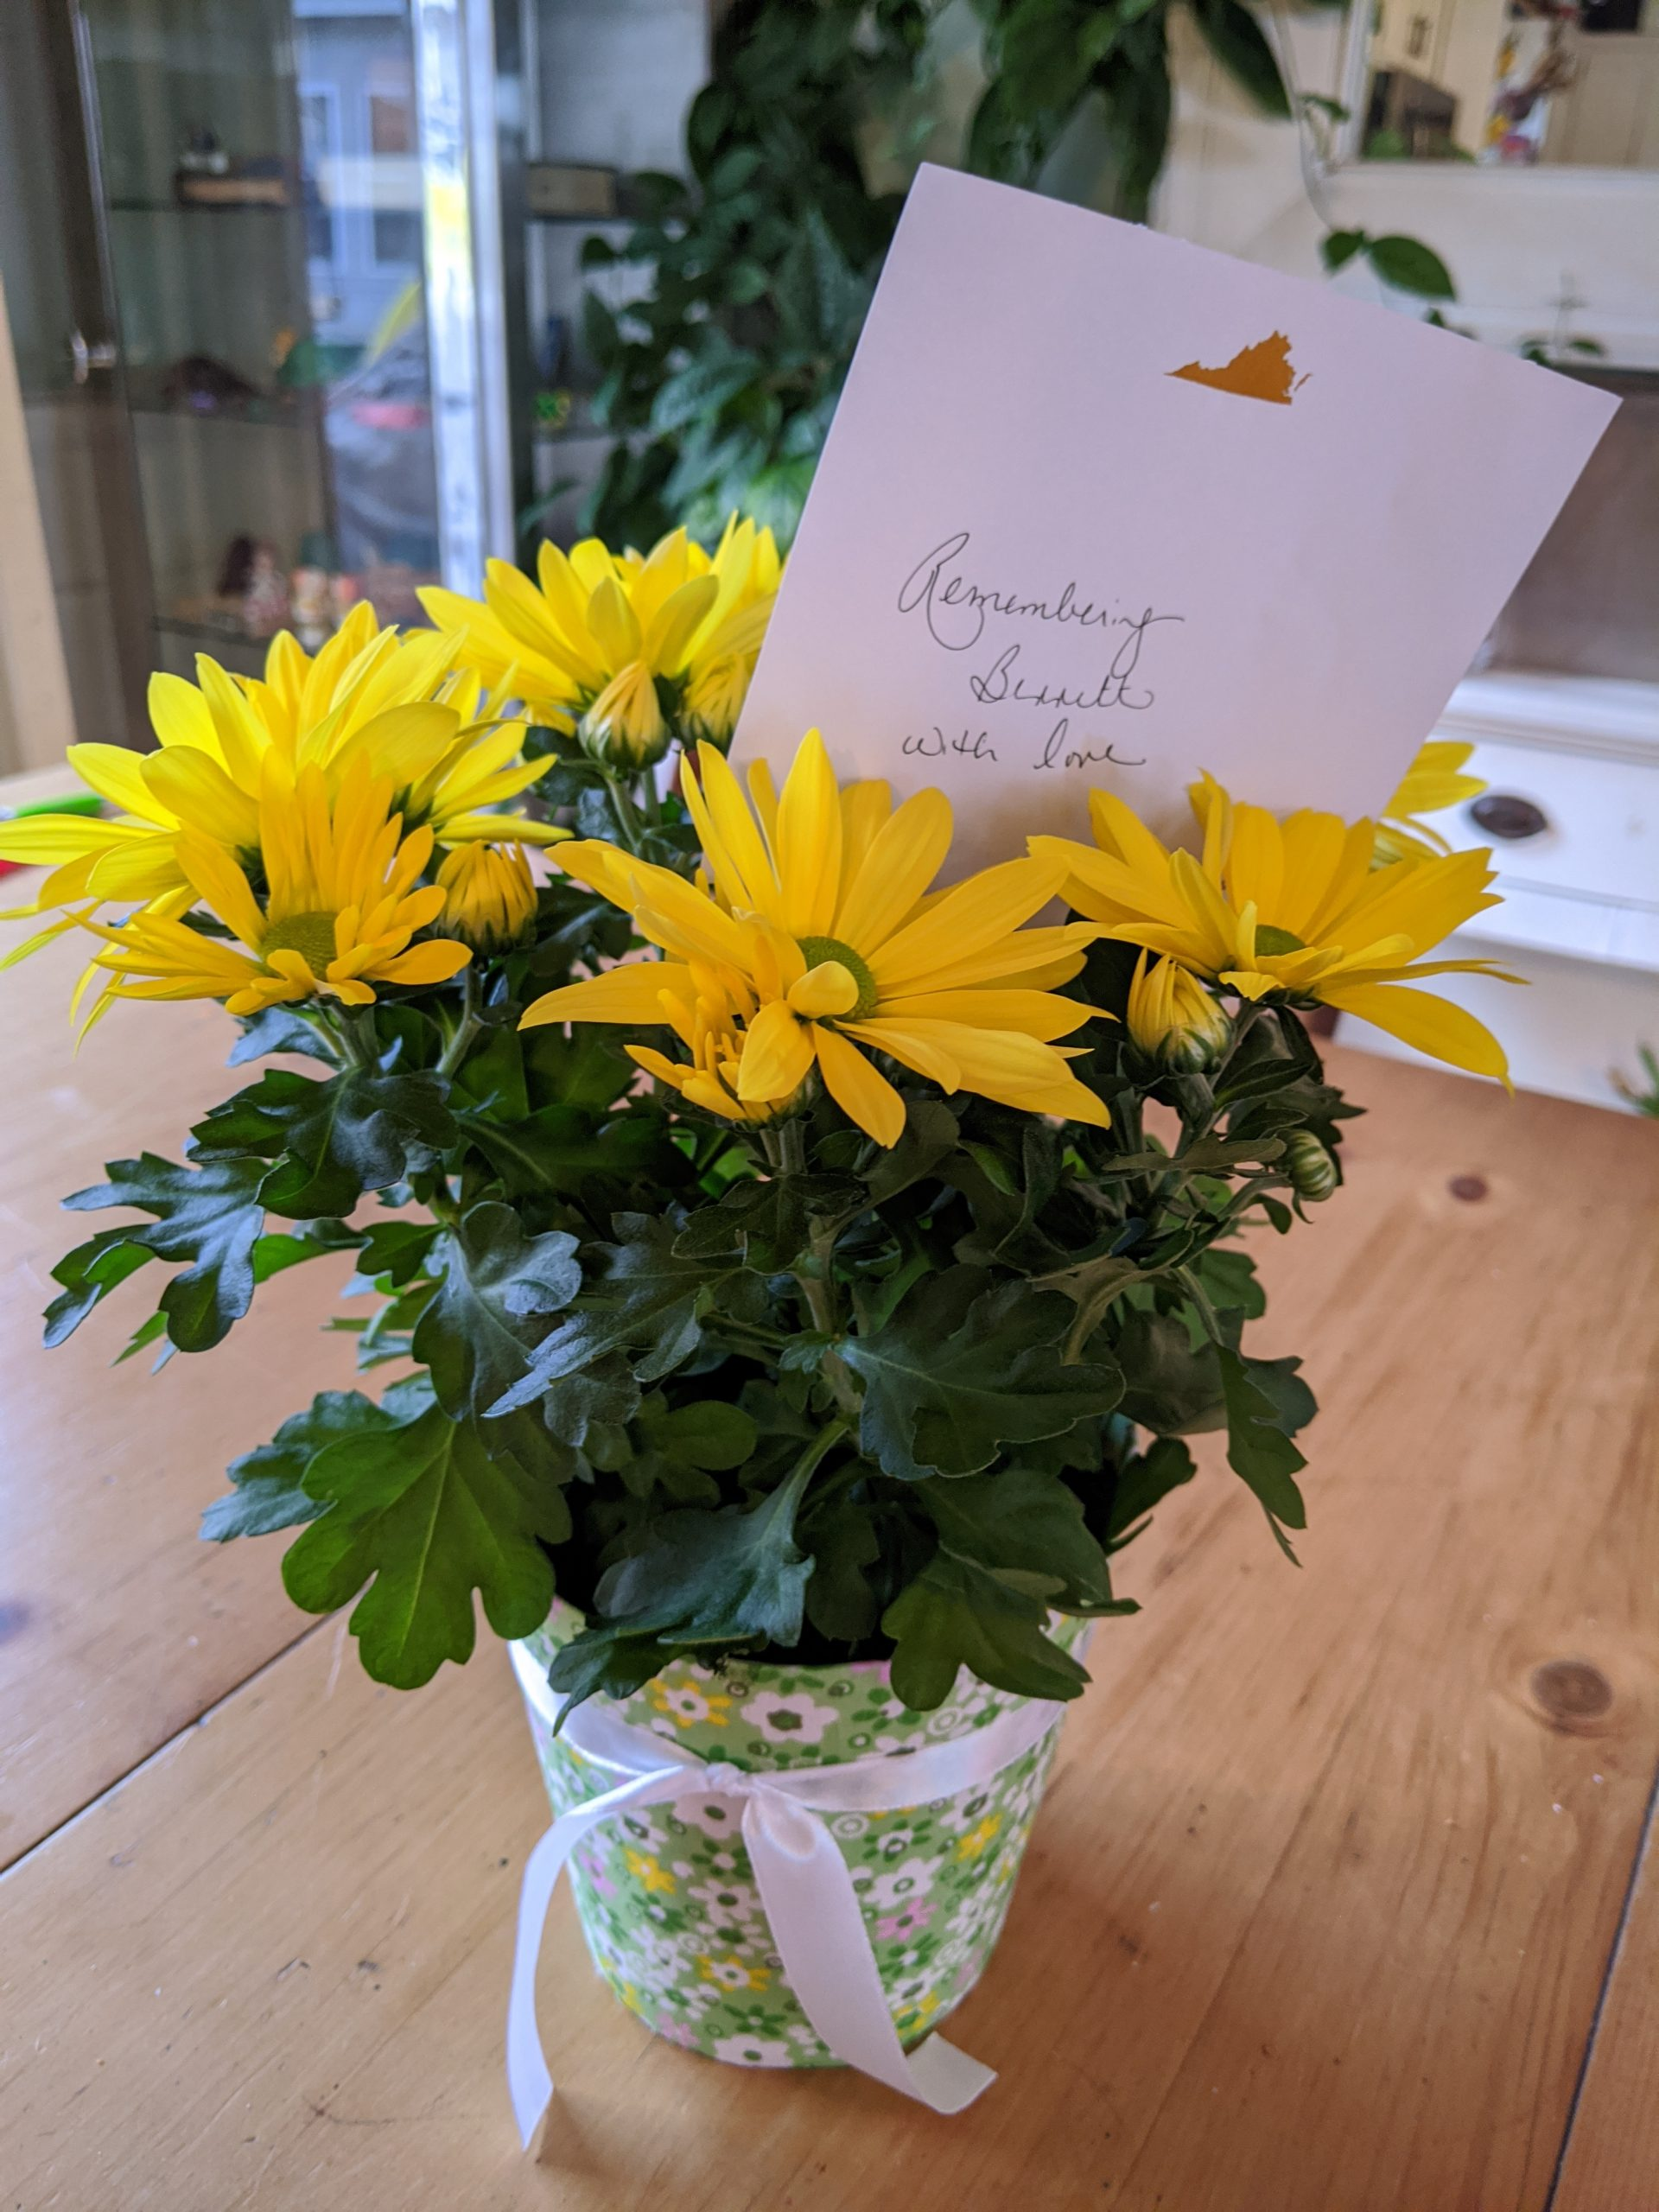 photo of yellow daisies and a note that says remembering Bennett with love